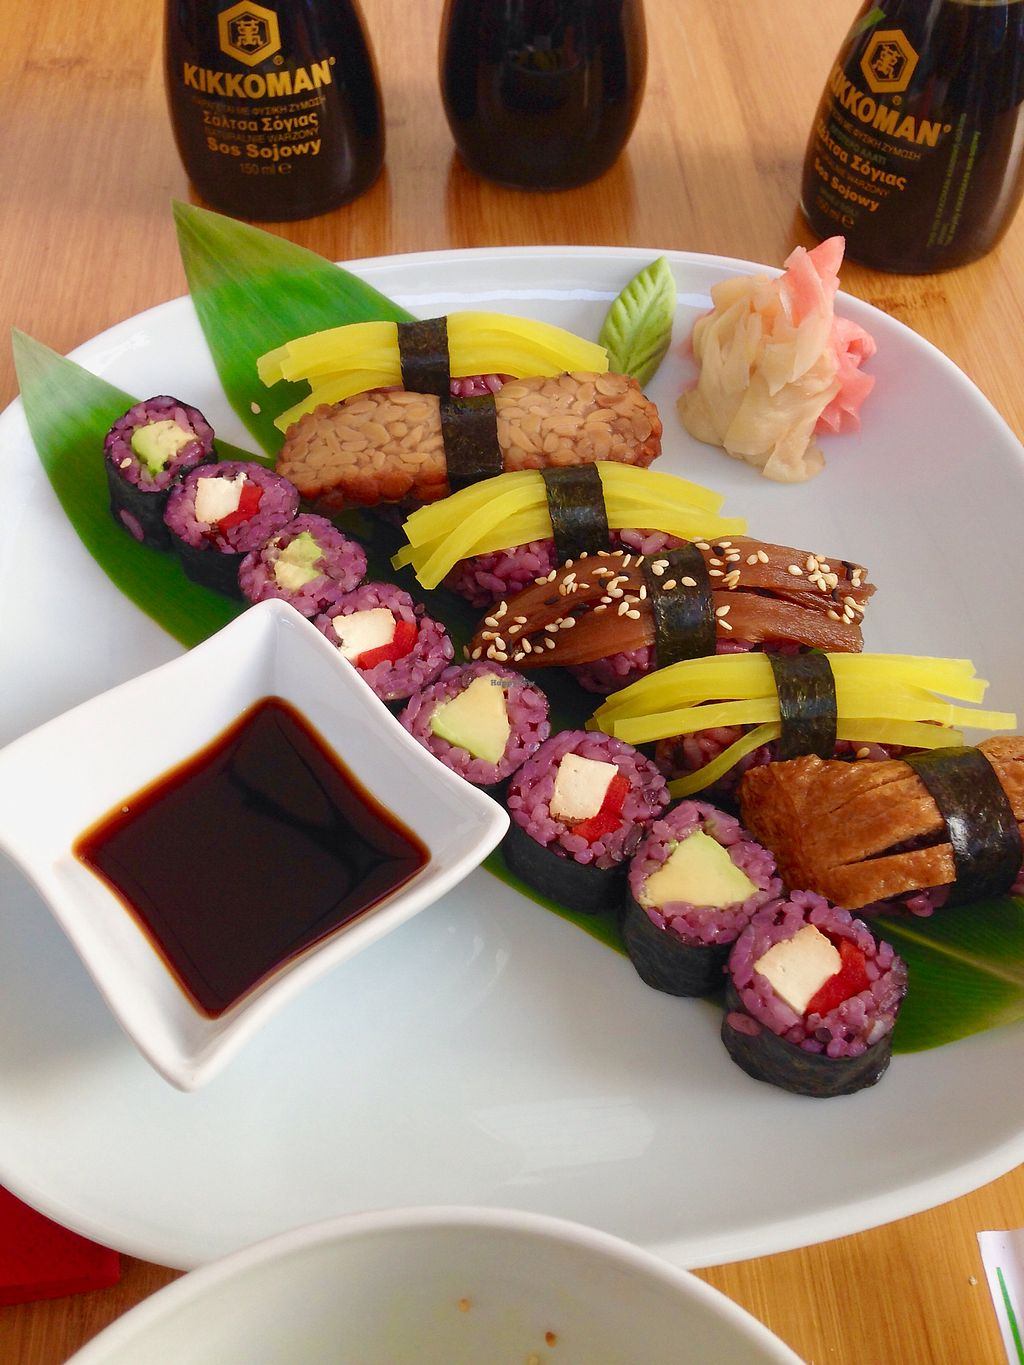 """Photo of Edamame Vegan Sushi  by <a href=""""/members/profile/nesanesanen"""">nesanesanen</a> <br/>it was delicious <br/> August 18, 2017  - <a href='/contact/abuse/image/65741/293981'>Report</a>"""